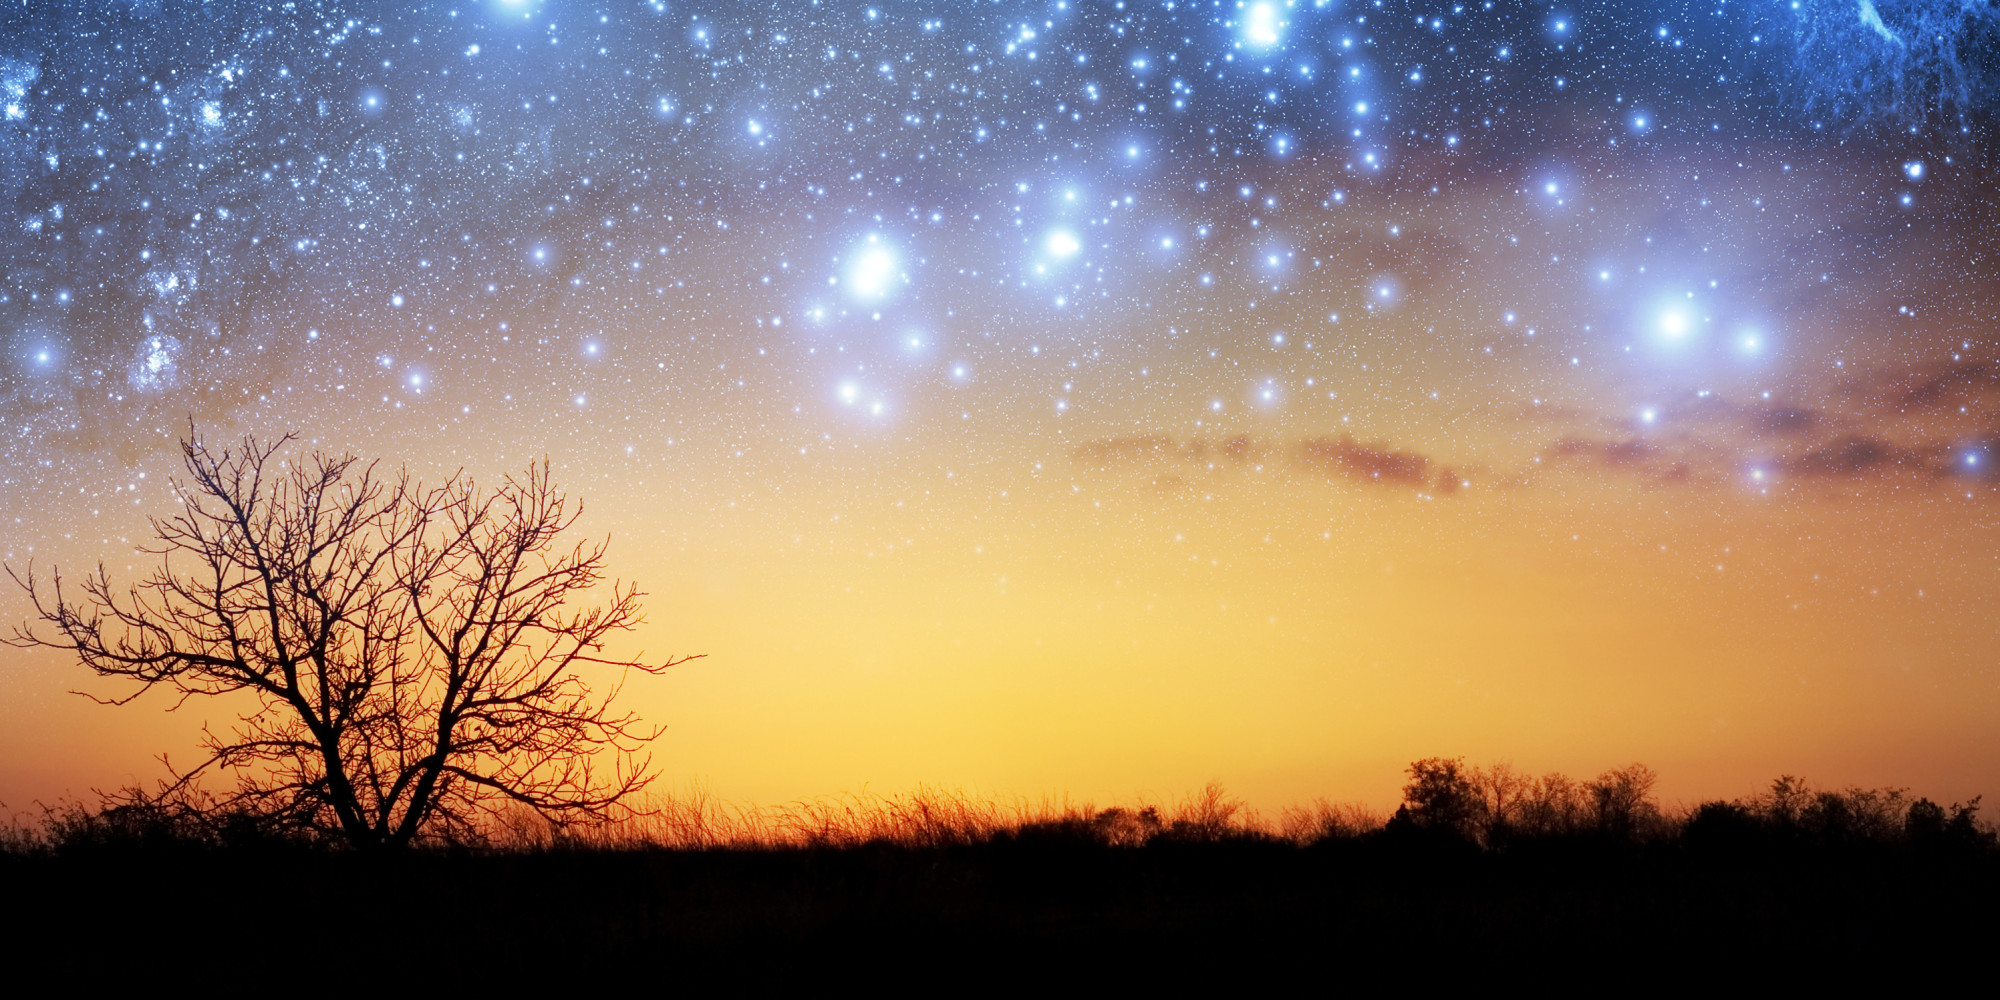 Falling Skies Wallpaper Featured Fifty Poetry Stars In The Early Morning Huffpost